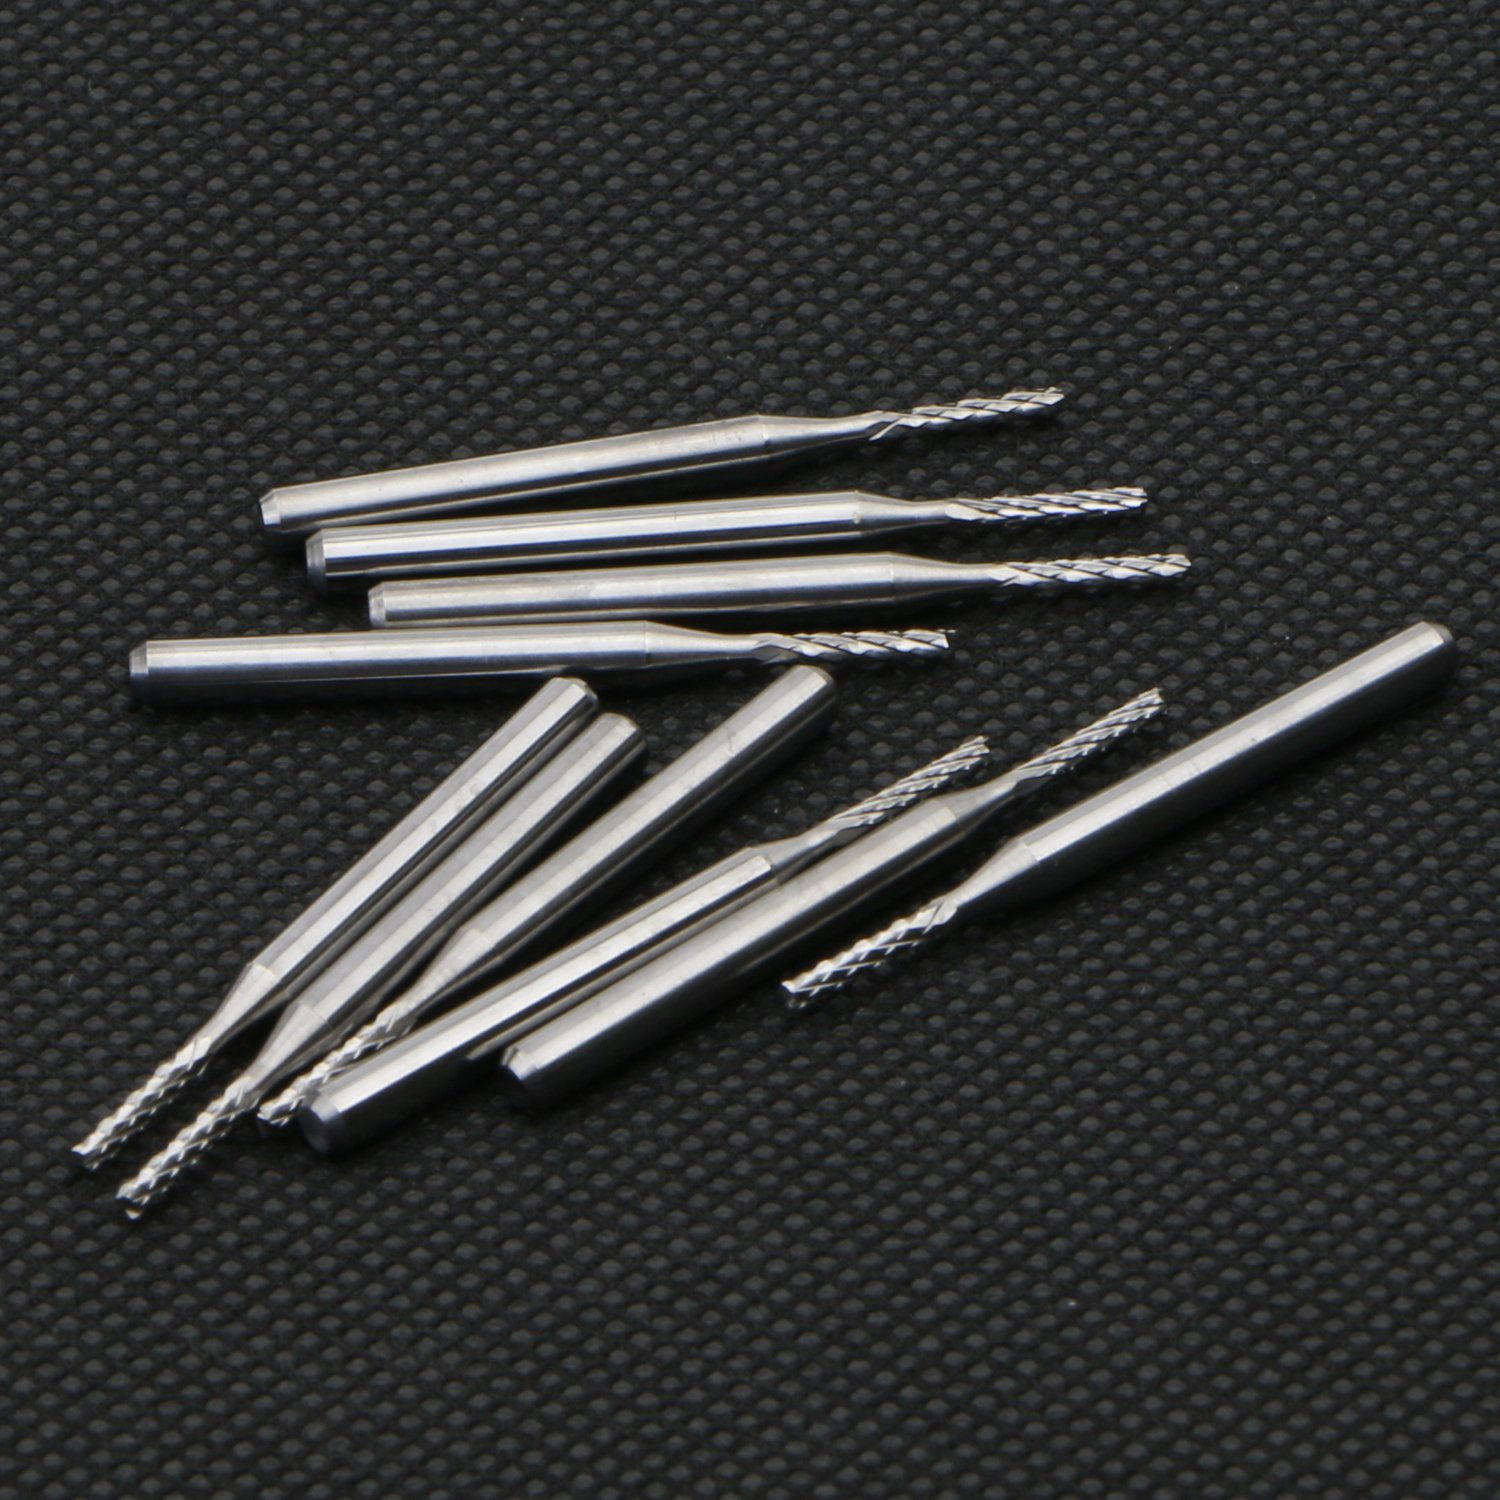 10 PCS Drills 1.5MM Carbide End Milling Cutter,CNC Router Bits End mill for PCB Machine Tool